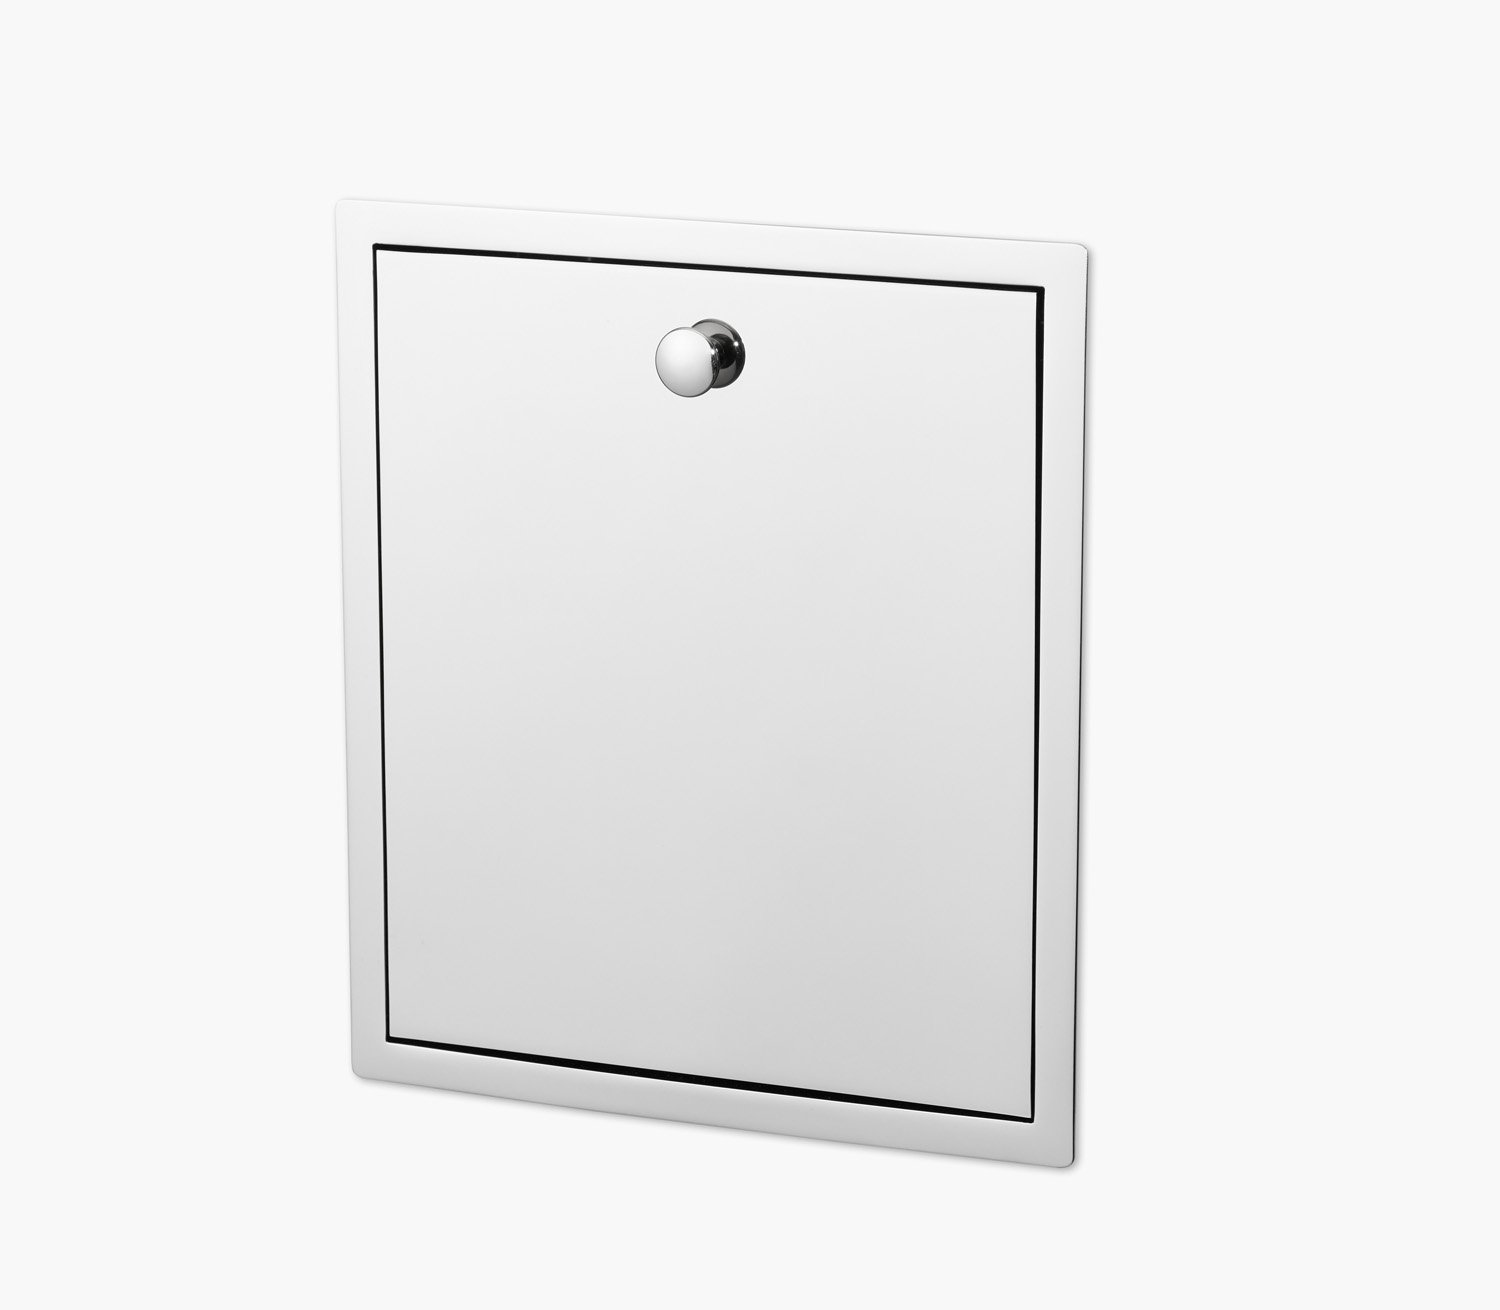 Wall Recessed Waste Bin Product Image 1